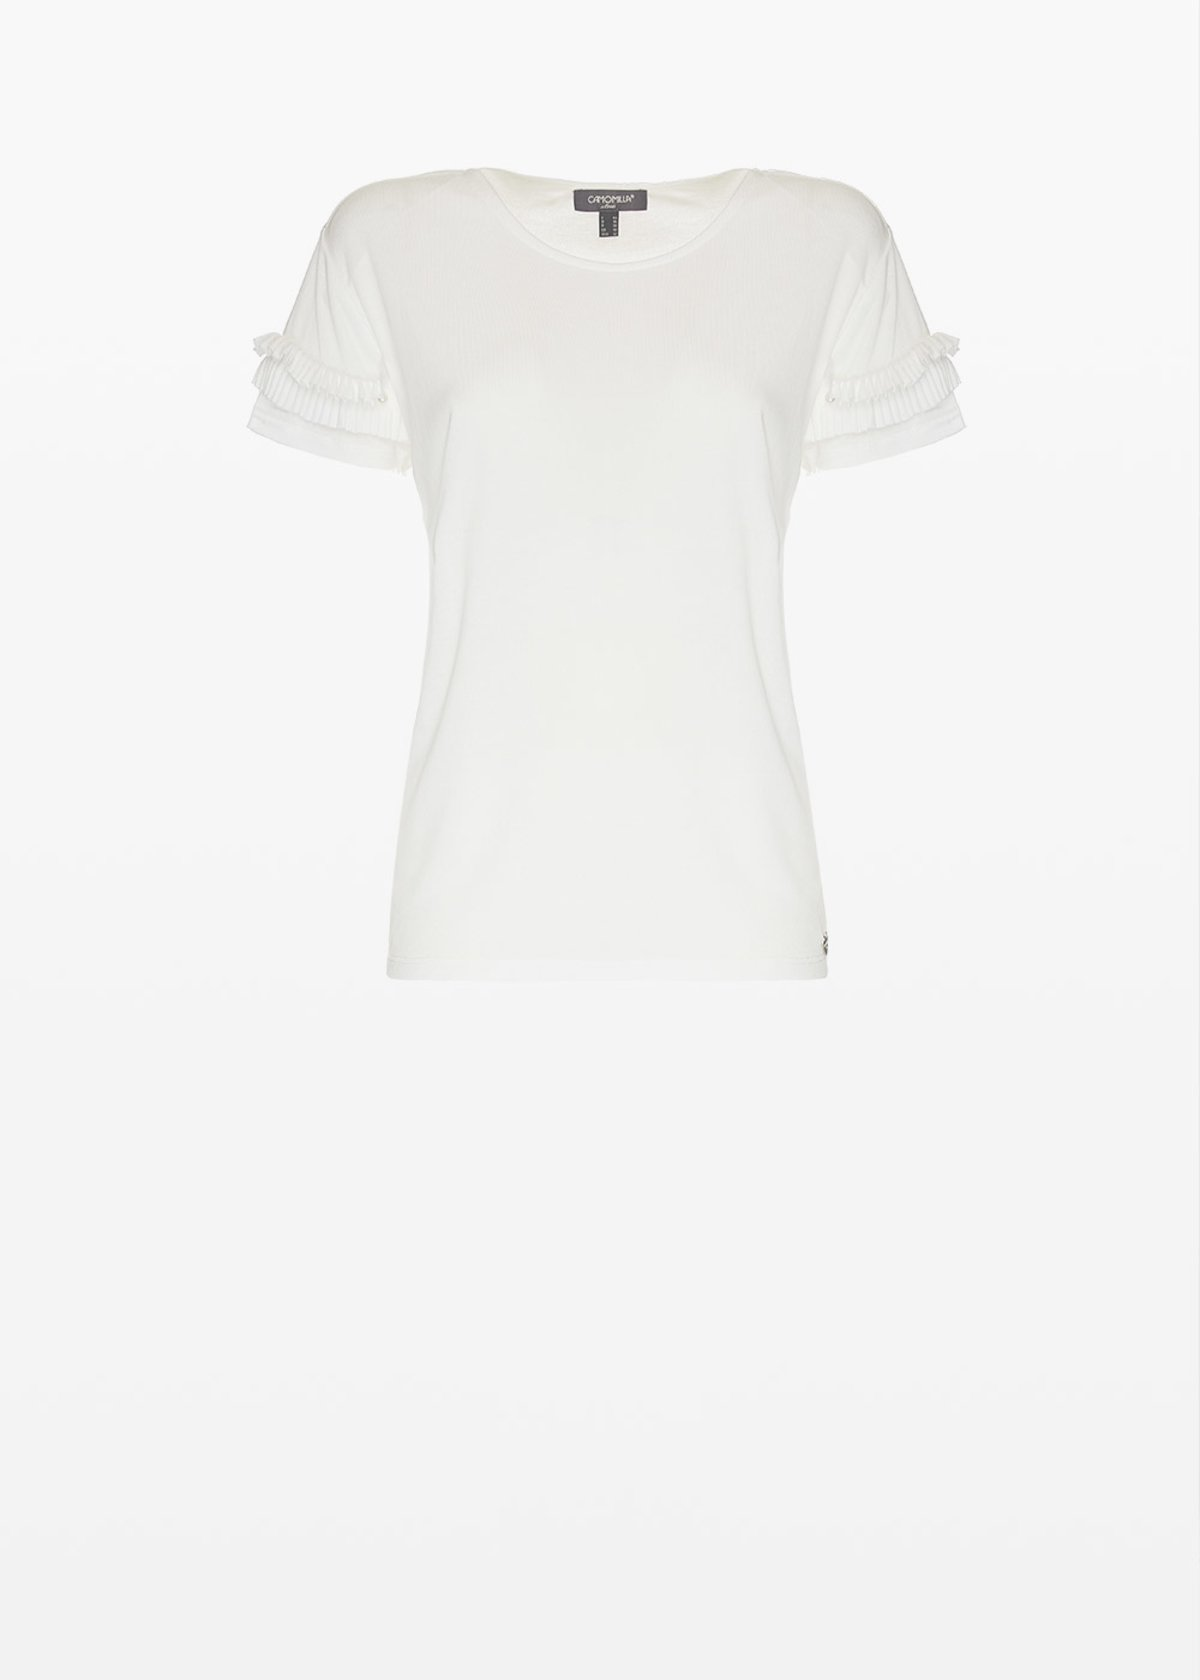 T-shirt Sabry in jersey con rouches al fondo manica - White - Donna - Immagine categoria